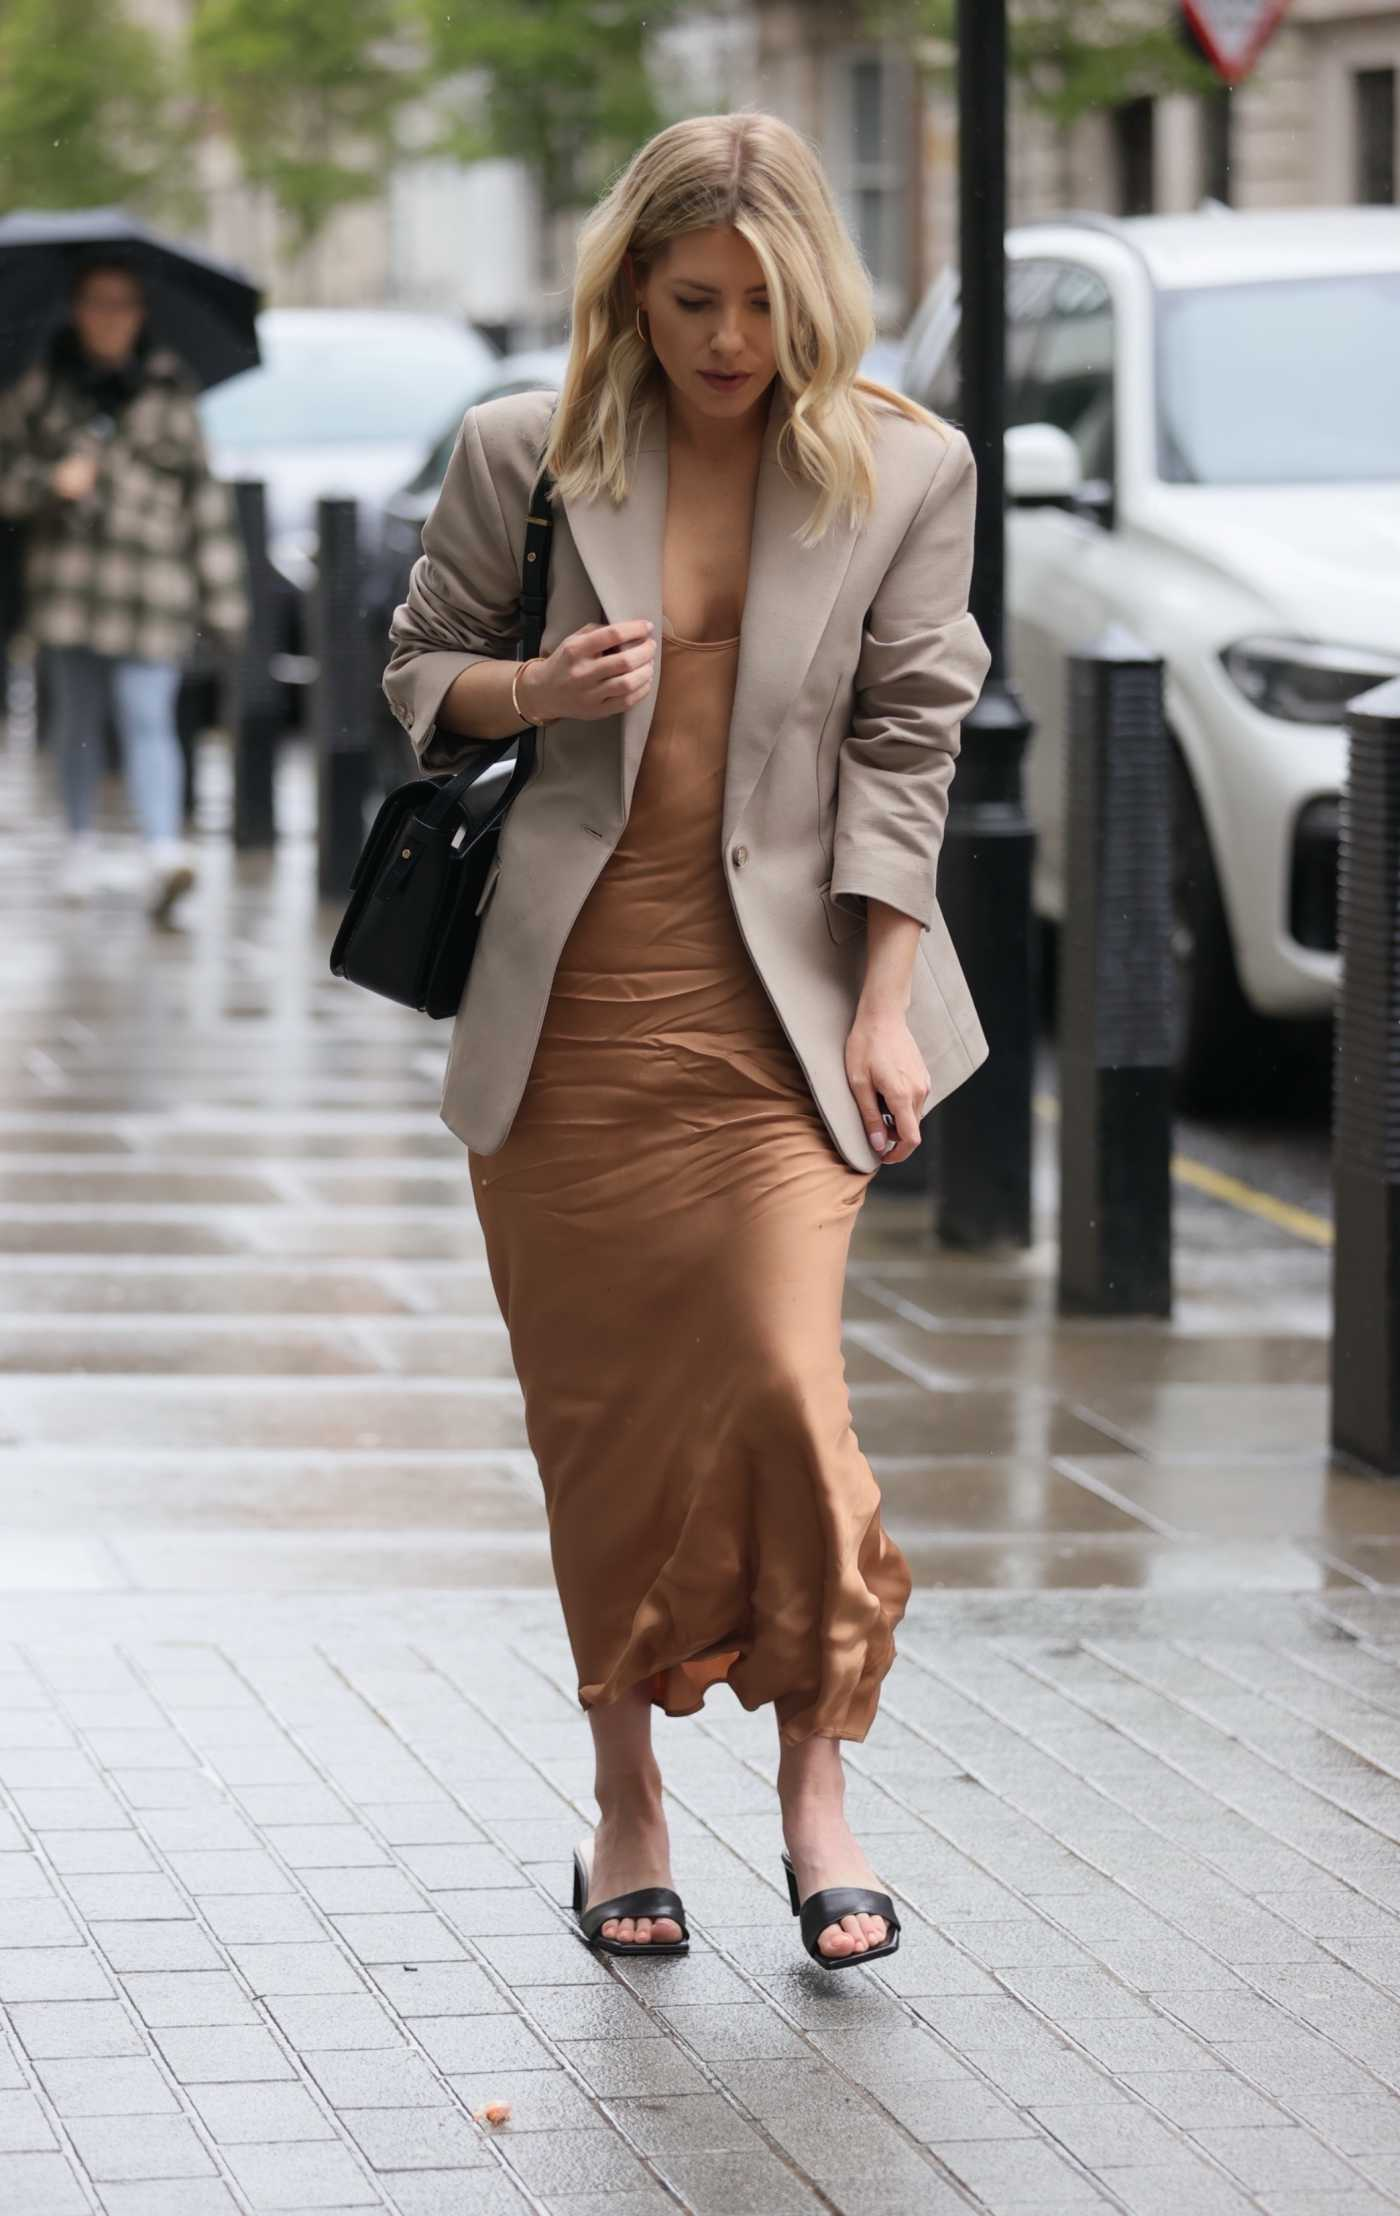 Mollie King in a Beige Blazer Arrives at the BBC Radio 1 in London 05/16/2021